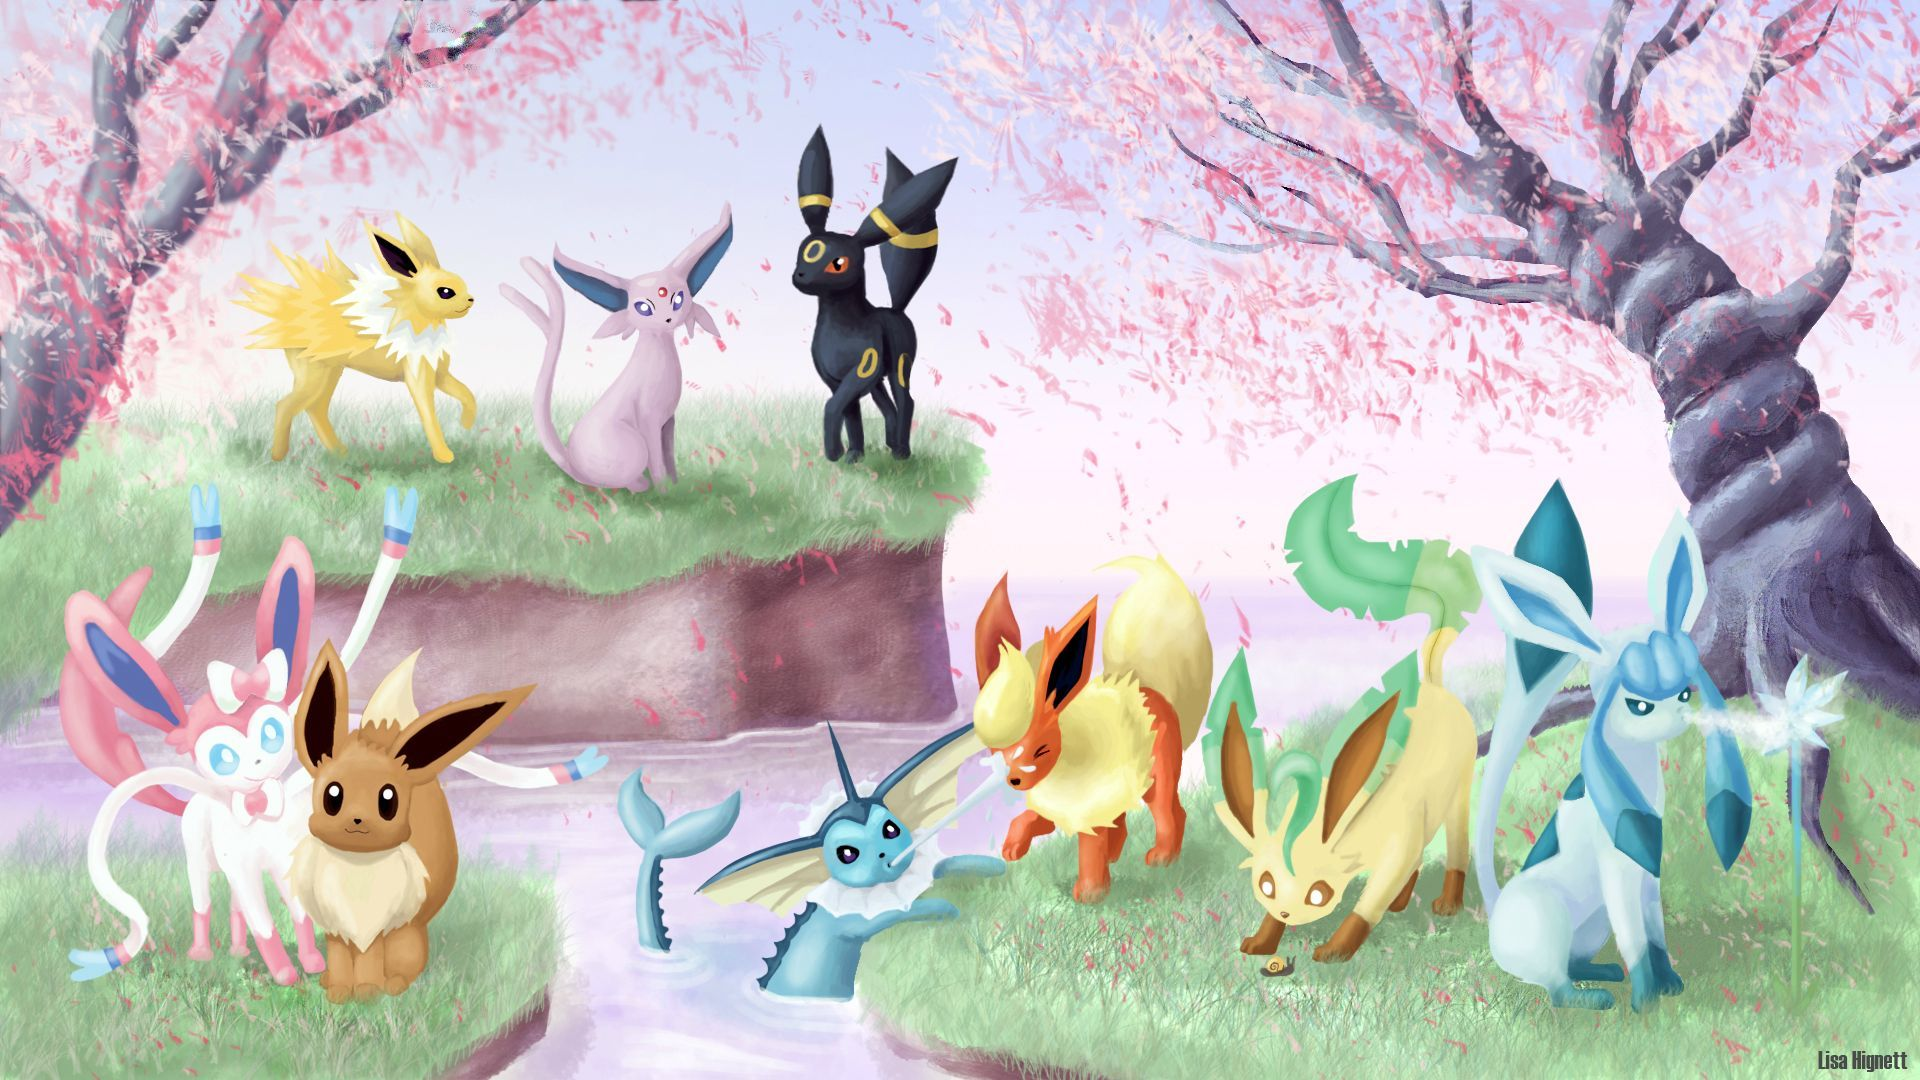 Eeveelutions Wallpapers Hd Free Download Eevee Wallpaper Cute Pokemon Wallpaper Pokemon Eeveelutions